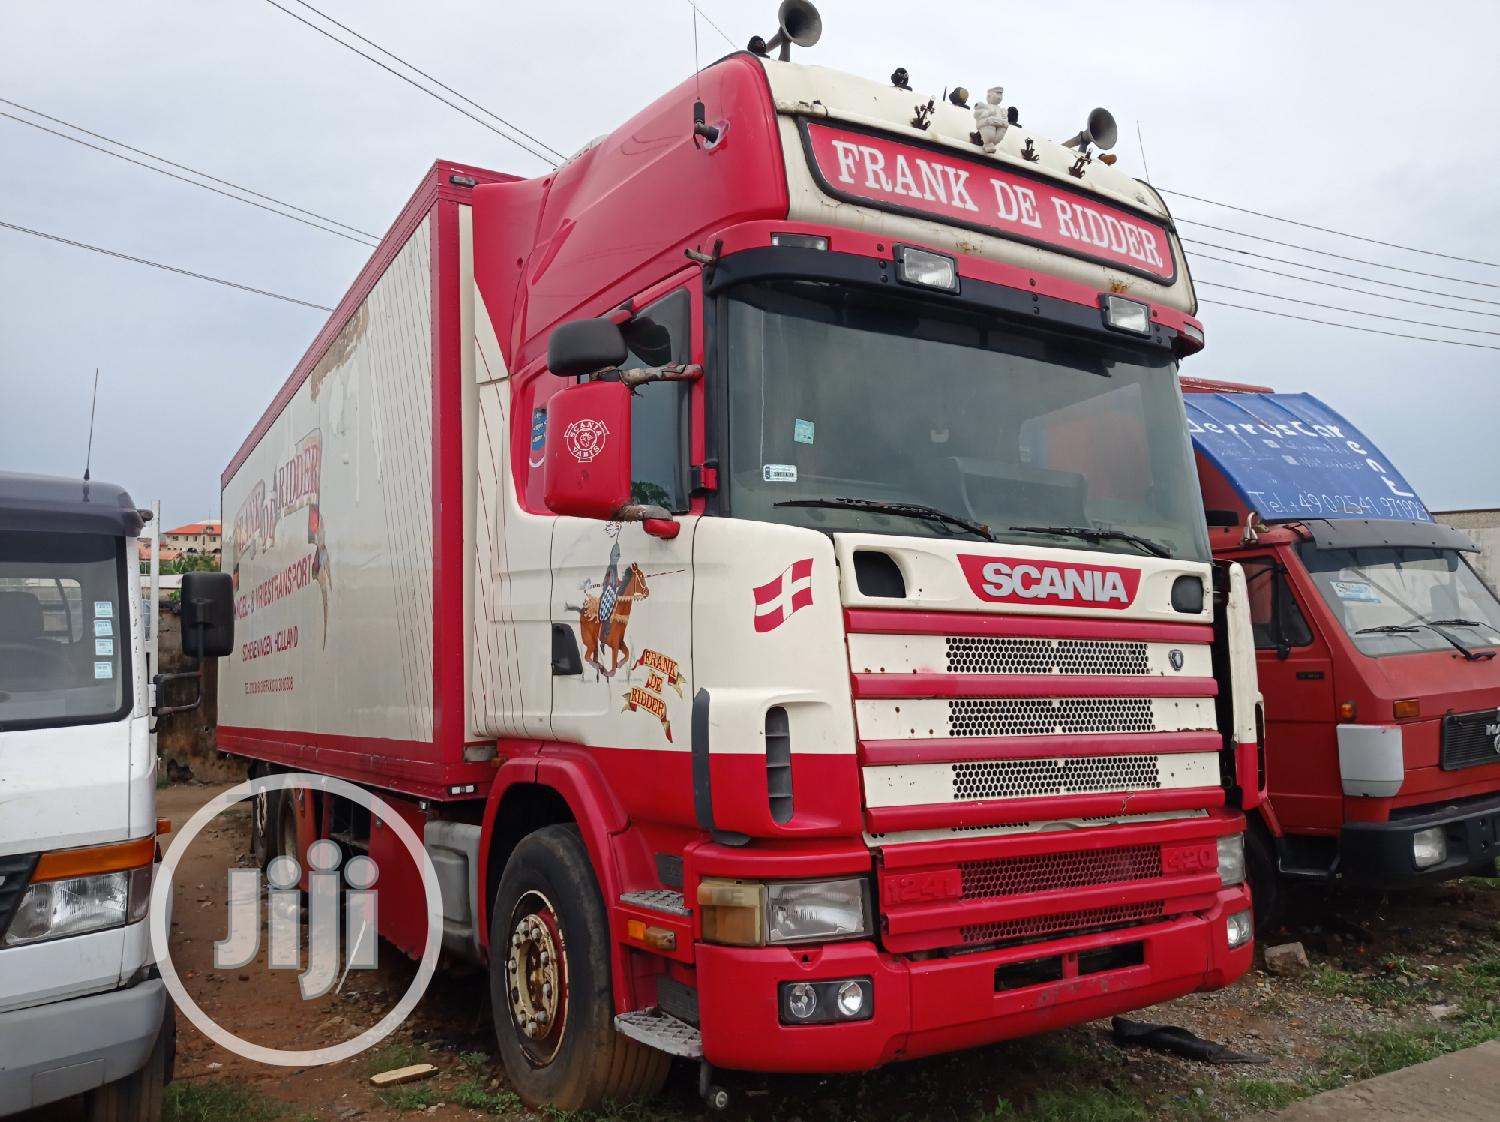 SCANIA Container(8 Tyres) 2001 | Trucks & Trailers for sale in Apapa, Lagos State, Nigeria